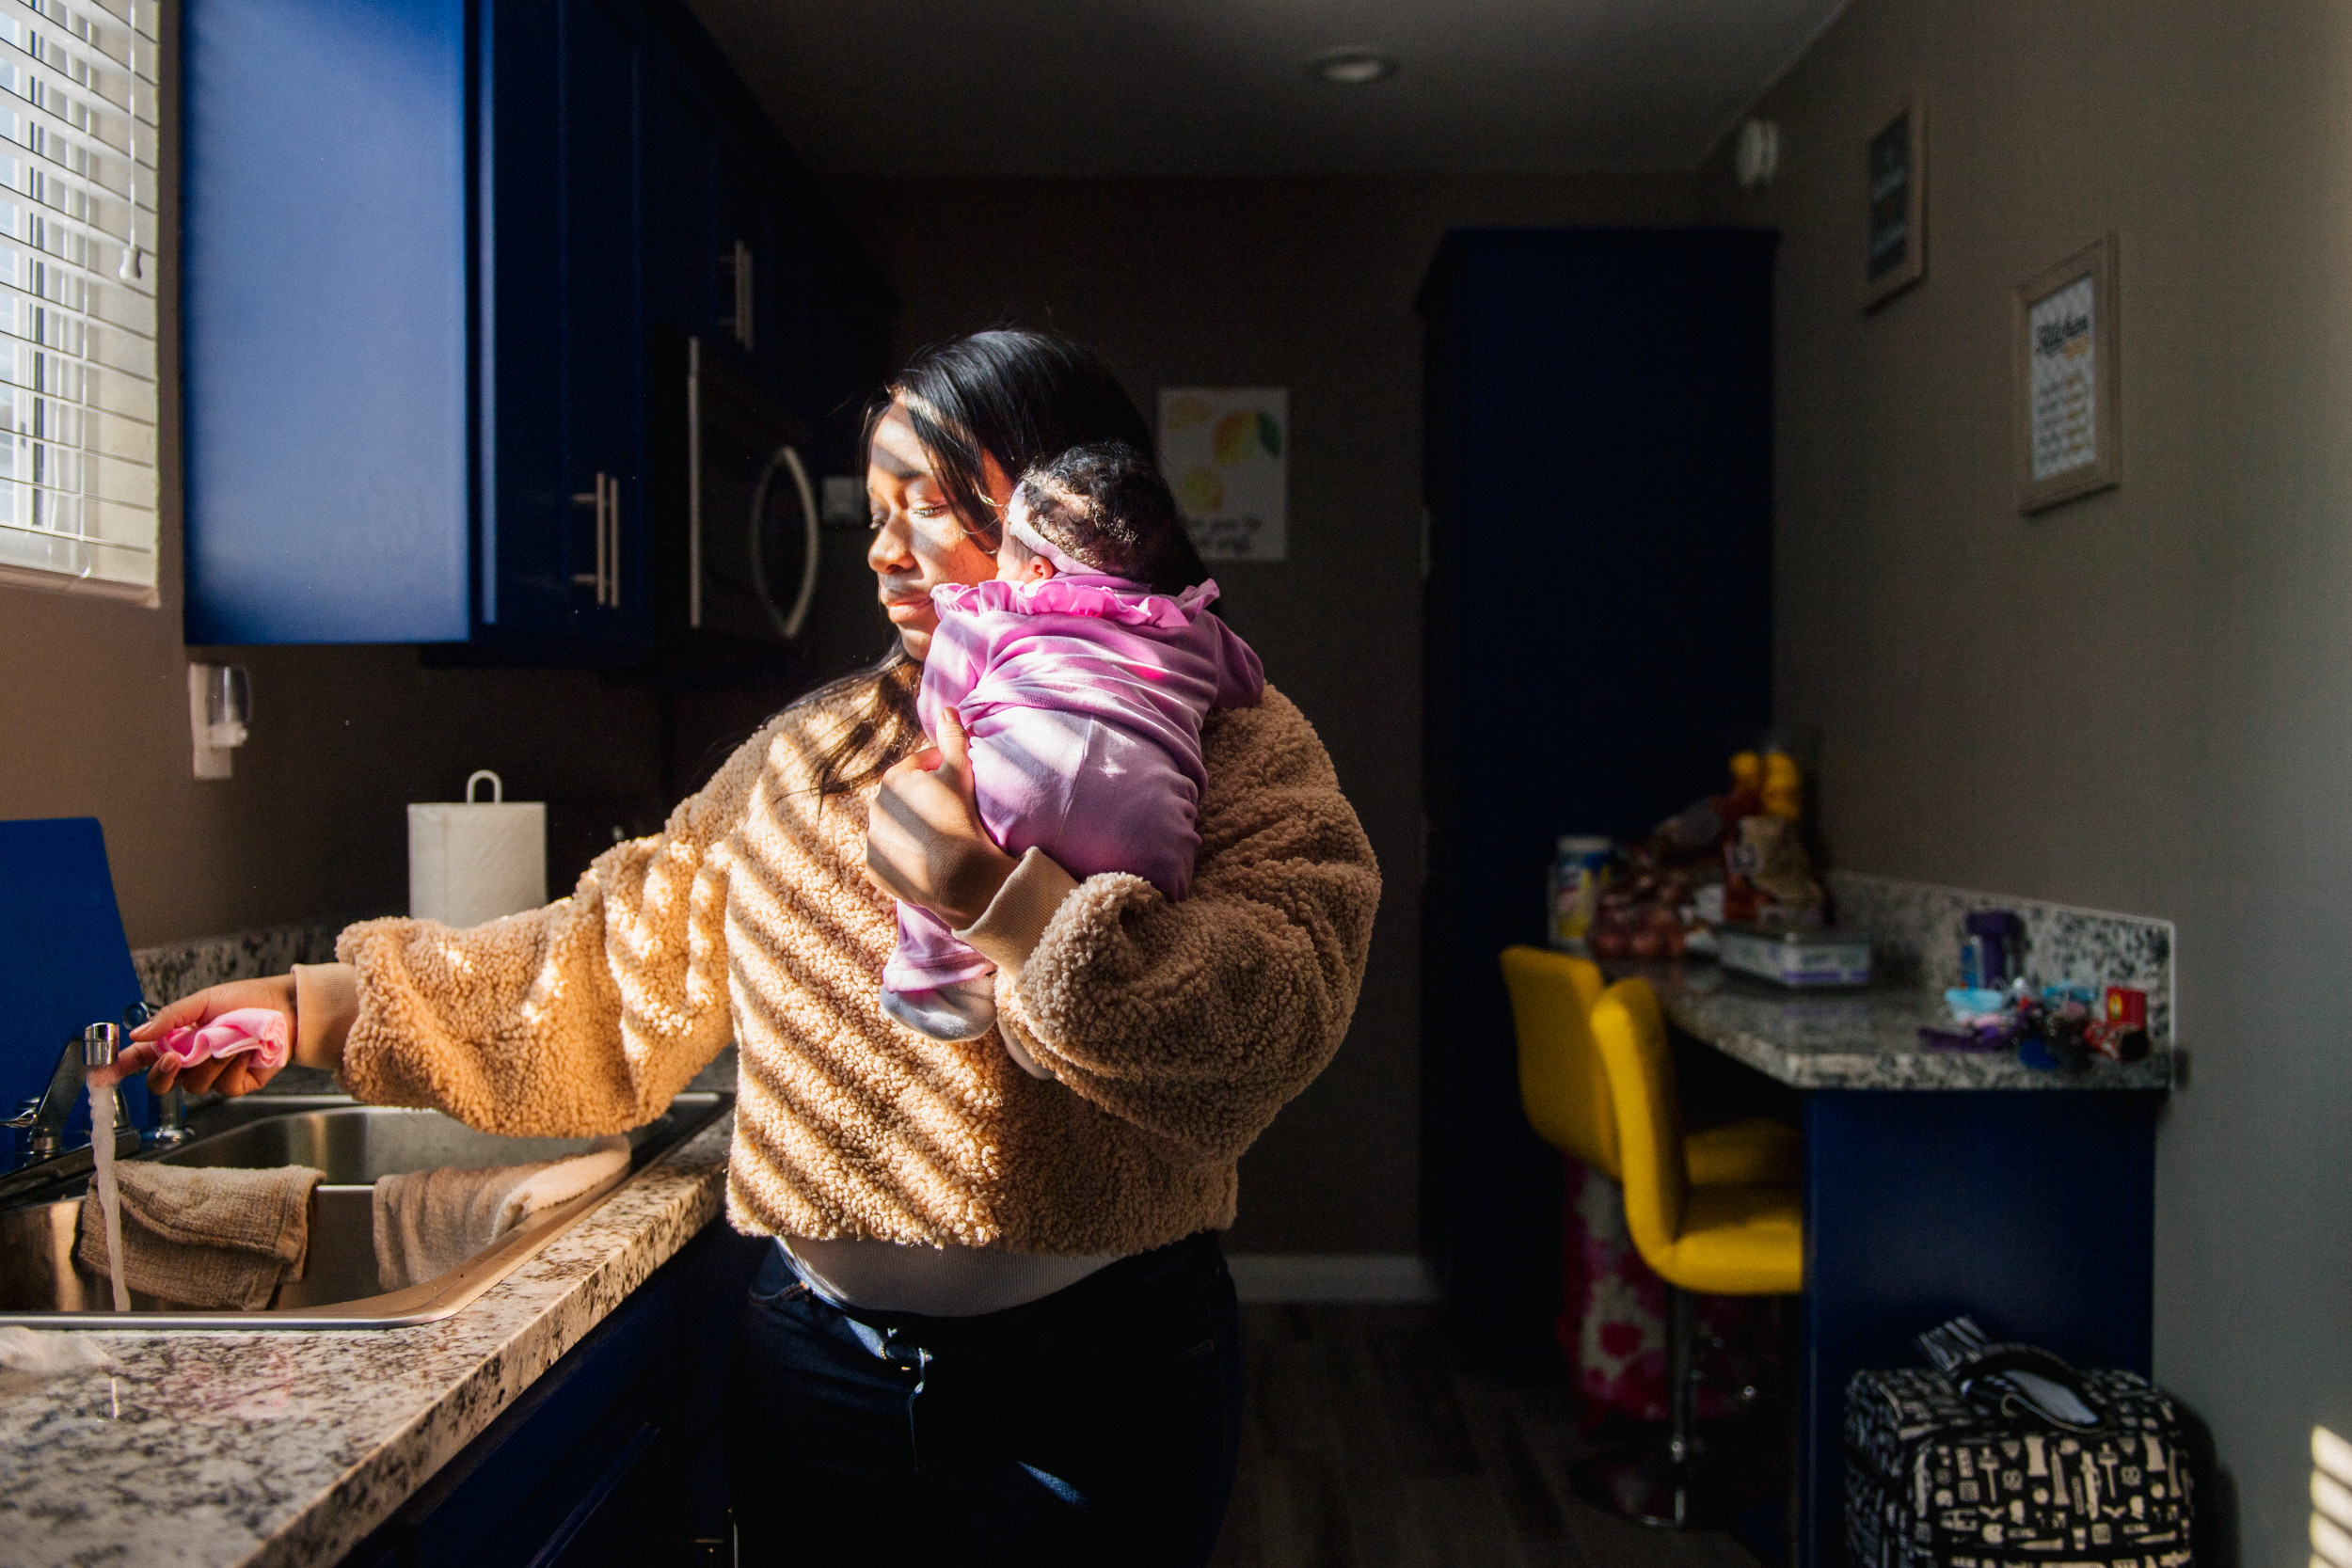 Feelings of loss, economic fear delayed pregnancies during pandemic, state data shows